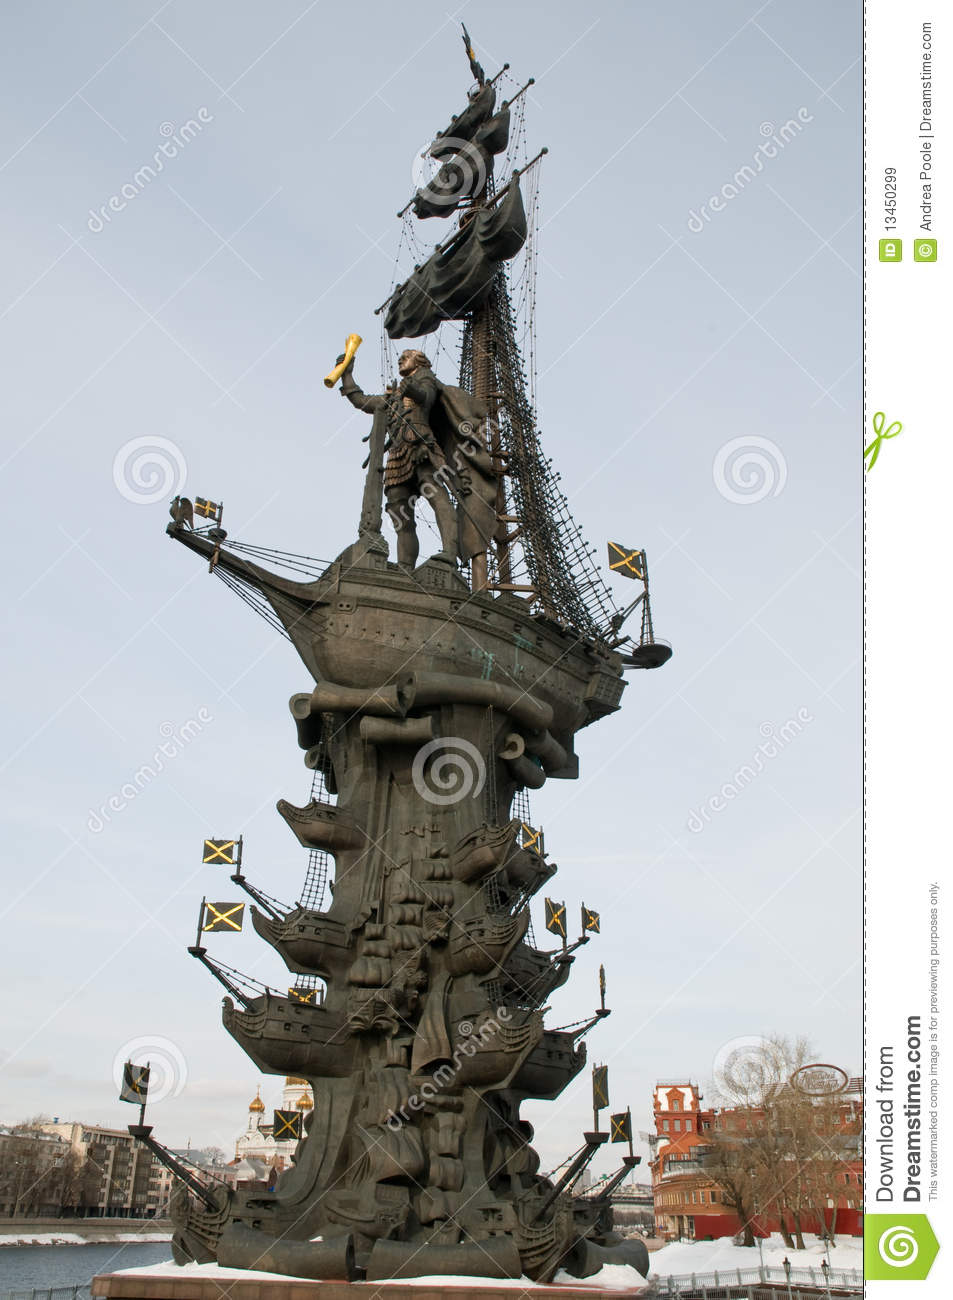 Of peter the great on a sailing ship on the moskva river in russia